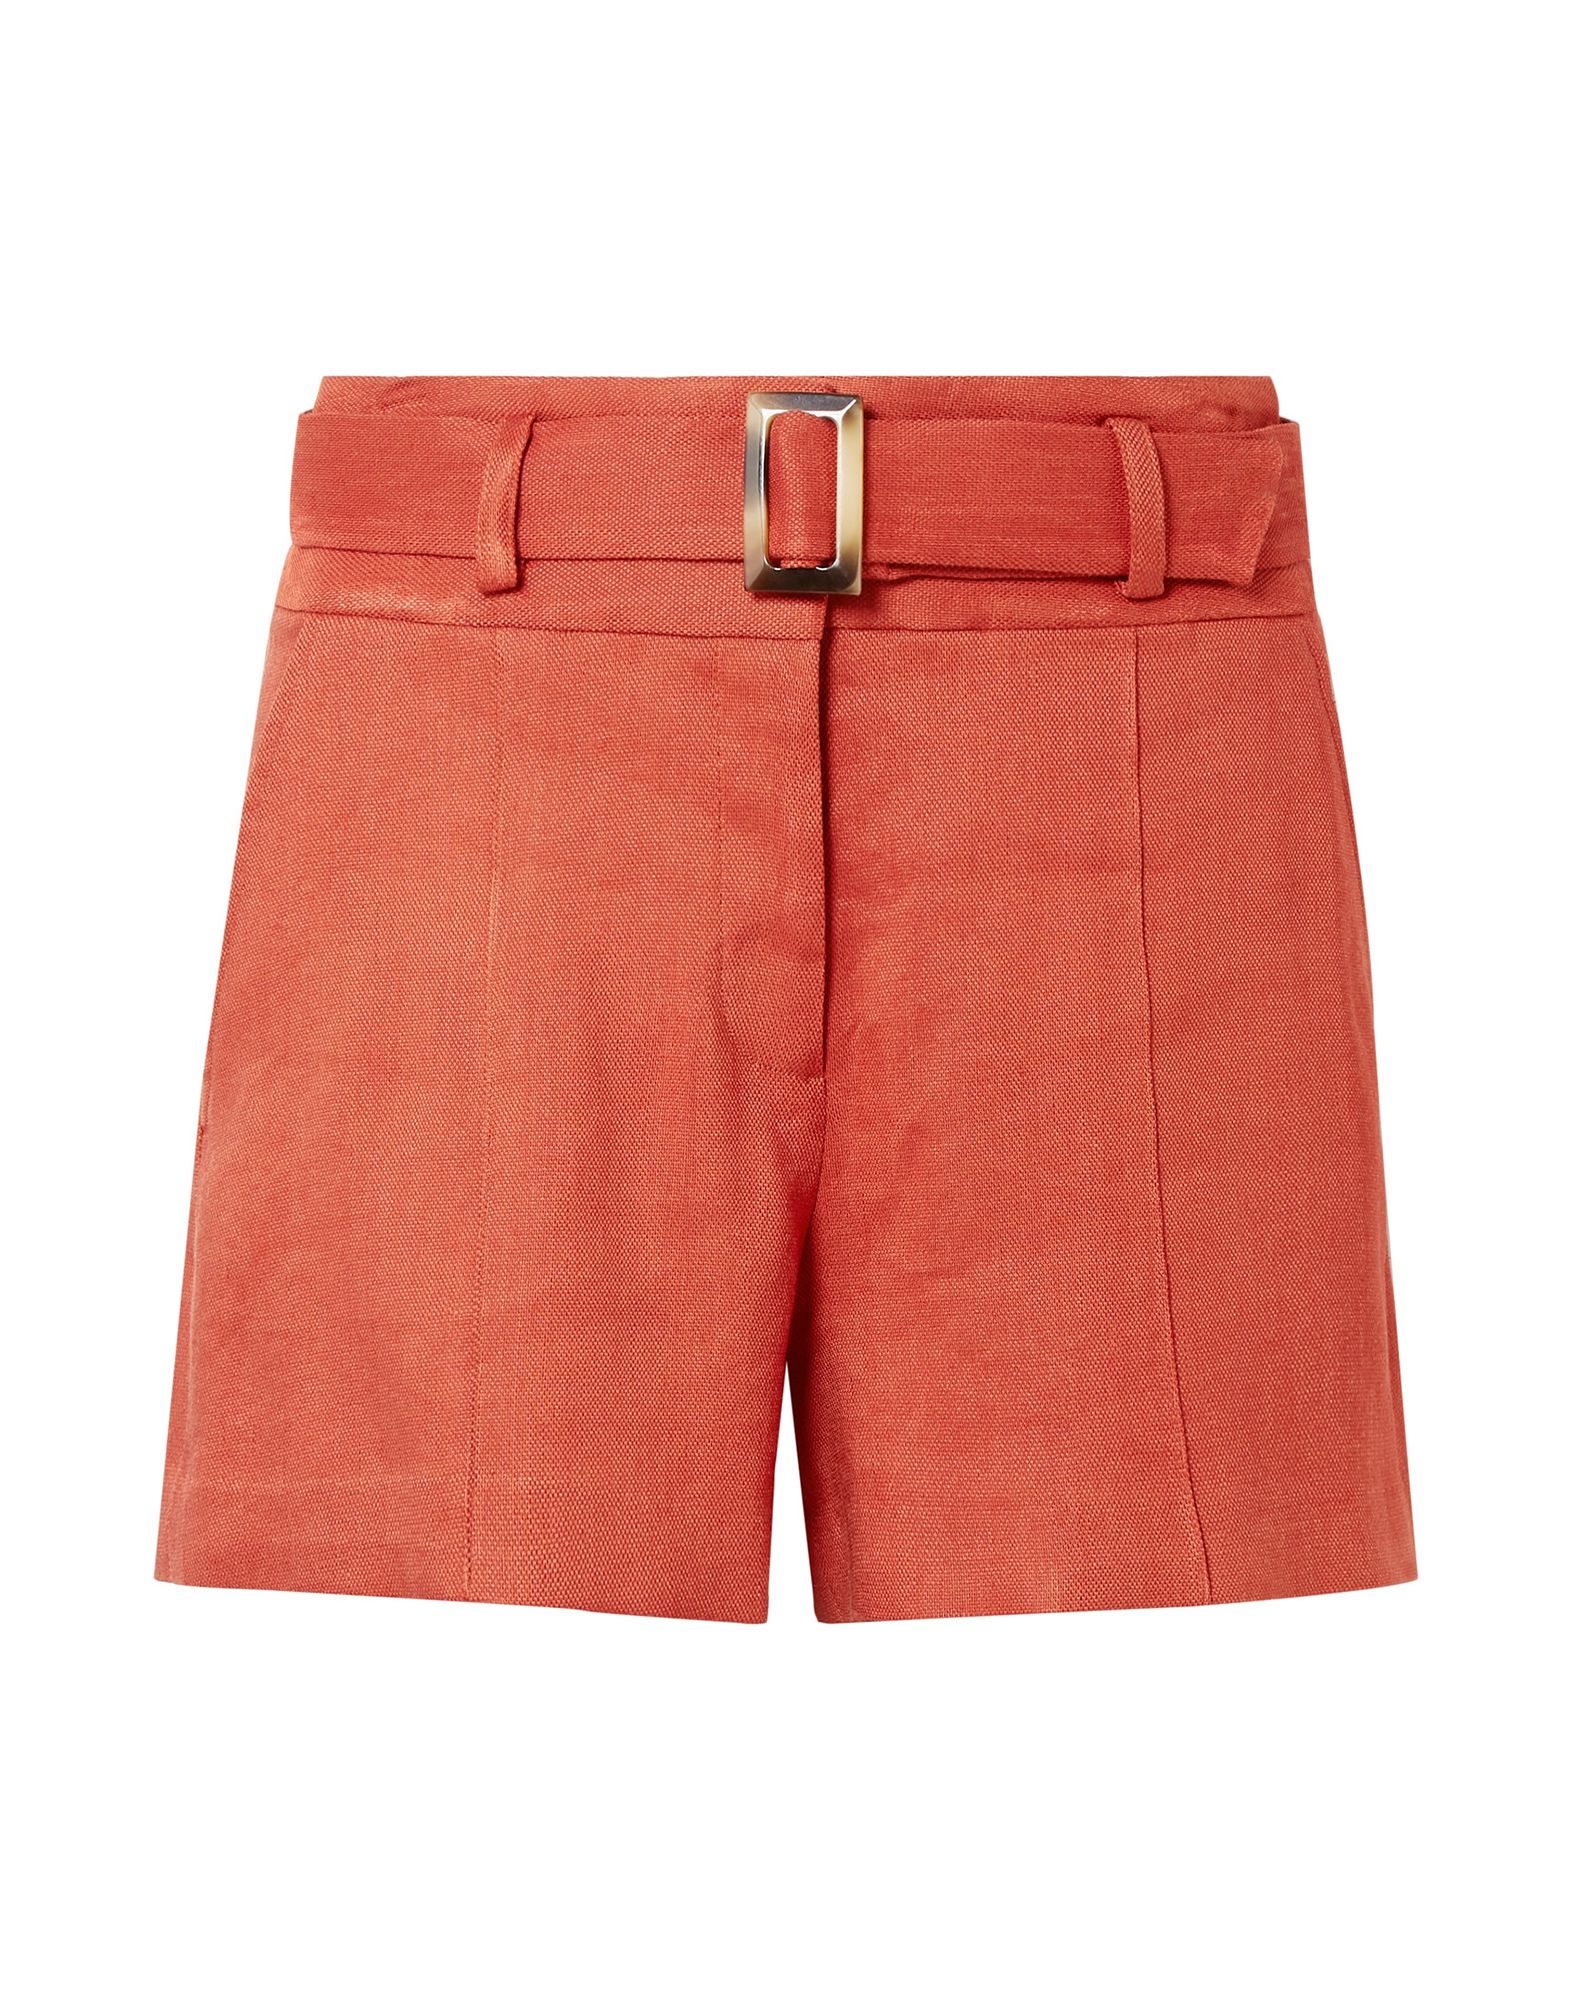 VERONICA BEARD Shorts. plain weave, belt, basic solid color, hook-and-bar, zip, high waisted, multipockets, stretch. 69% Linen, 29% Viscose, 2% Elastane